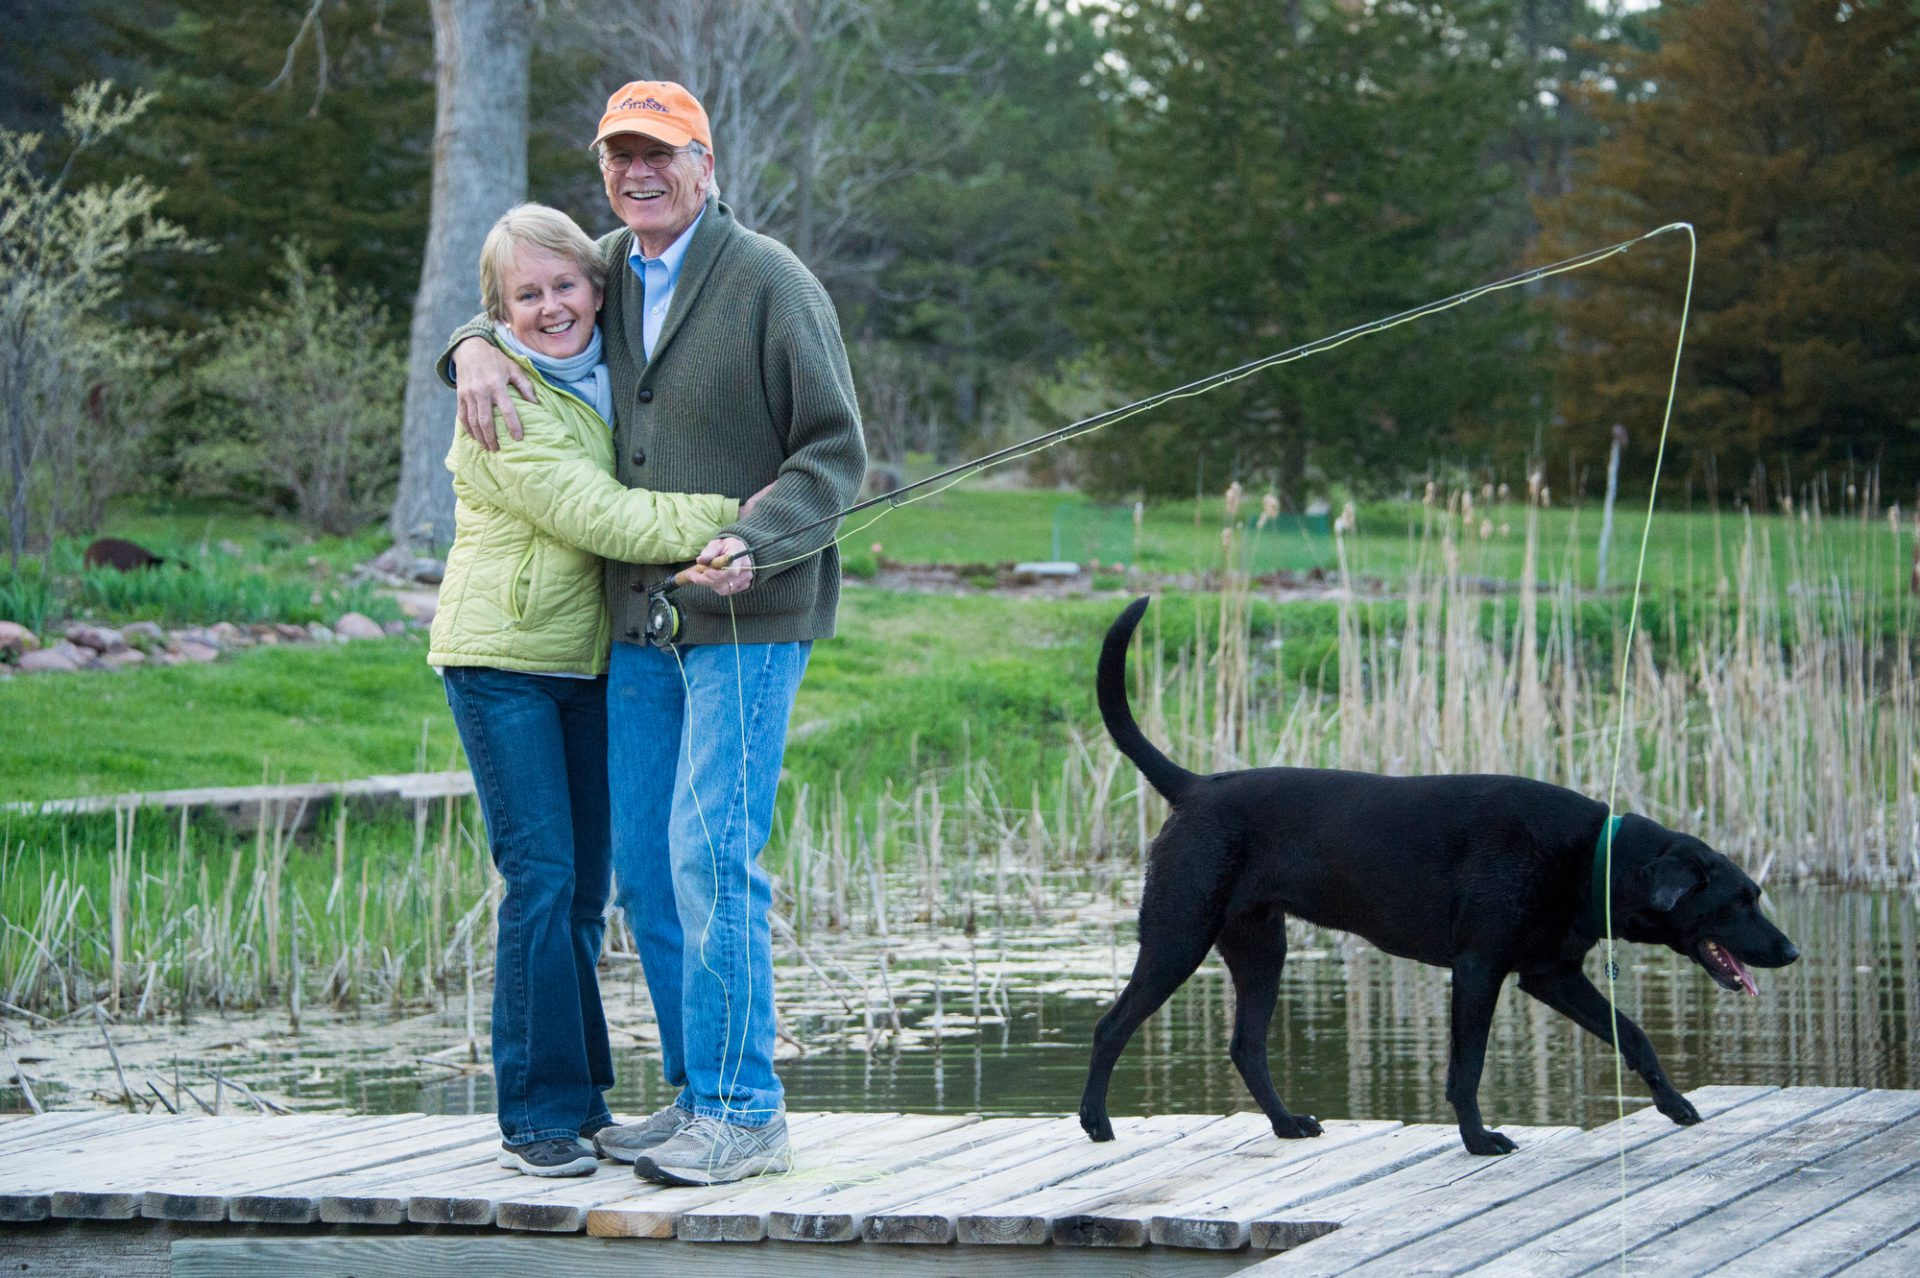 Photo: A couple with their dog at their fishing pond.